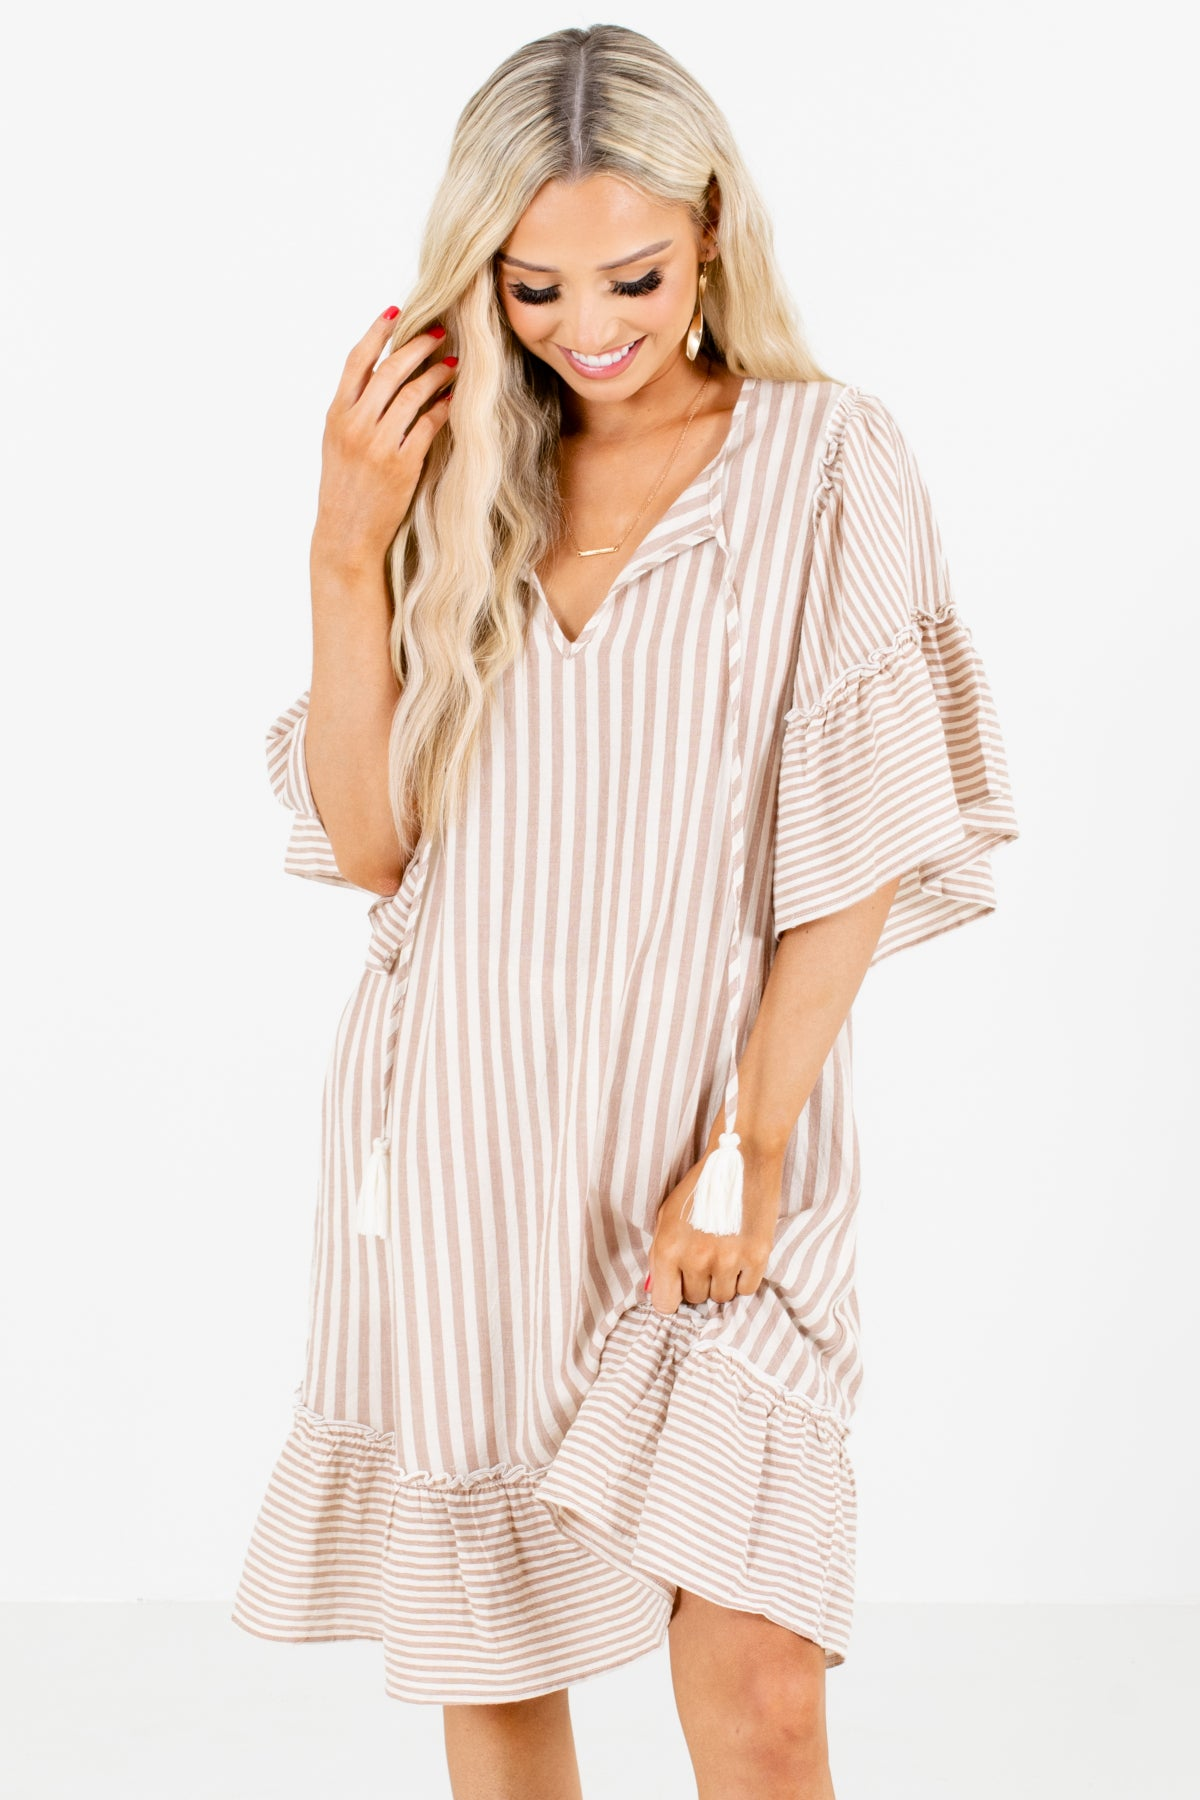 Brown and White Striped Boutique Knee-Length Dresses for Women